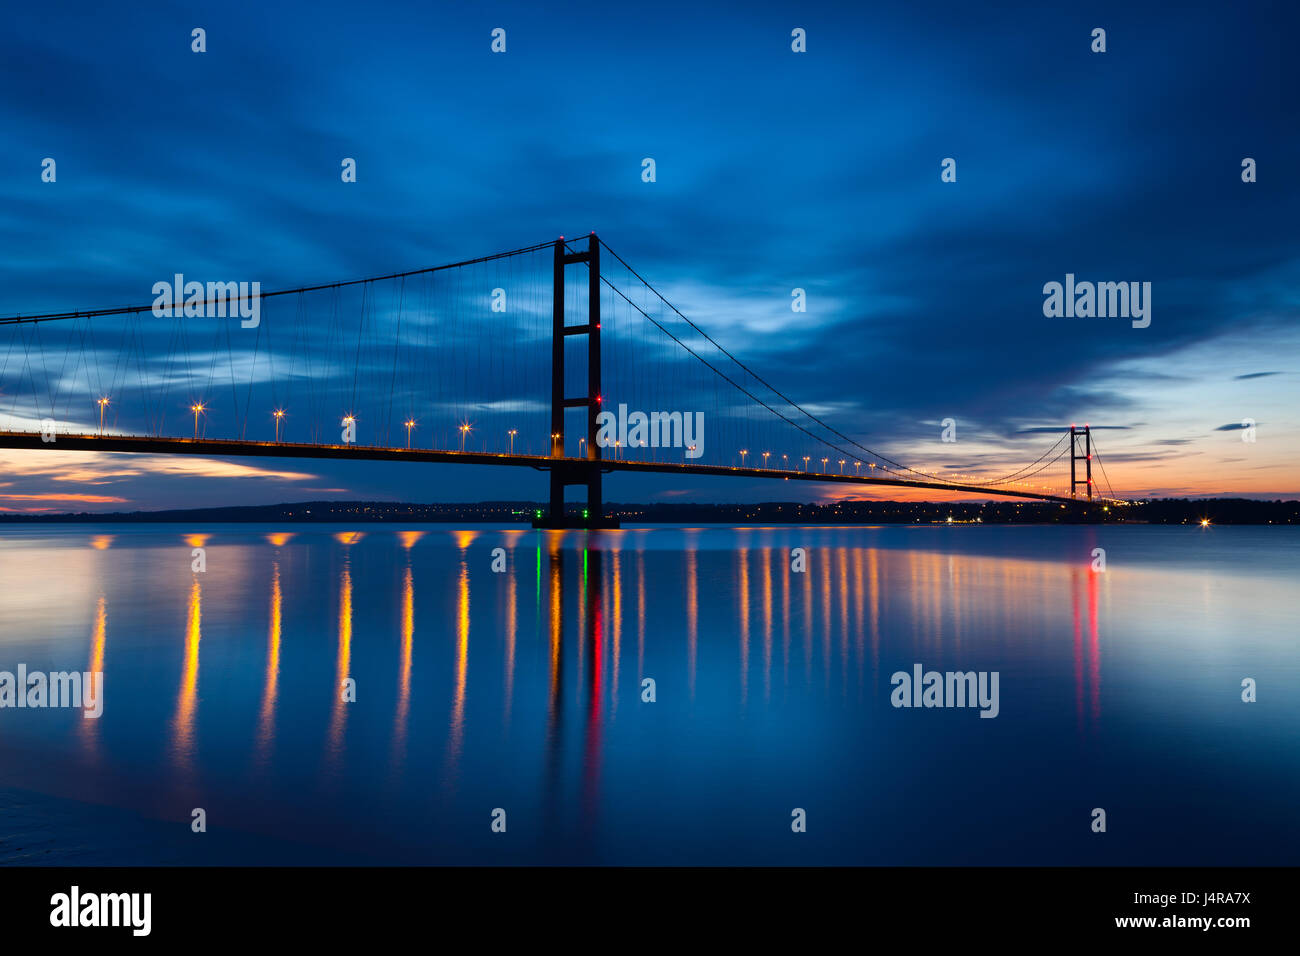 UK Weather: Barton-upon-Humber, North Lincolnshire, UK. 13th May 2017. The Humber Bridge at dusk. Credit: LEE BEEL/Alamy - Stock Image